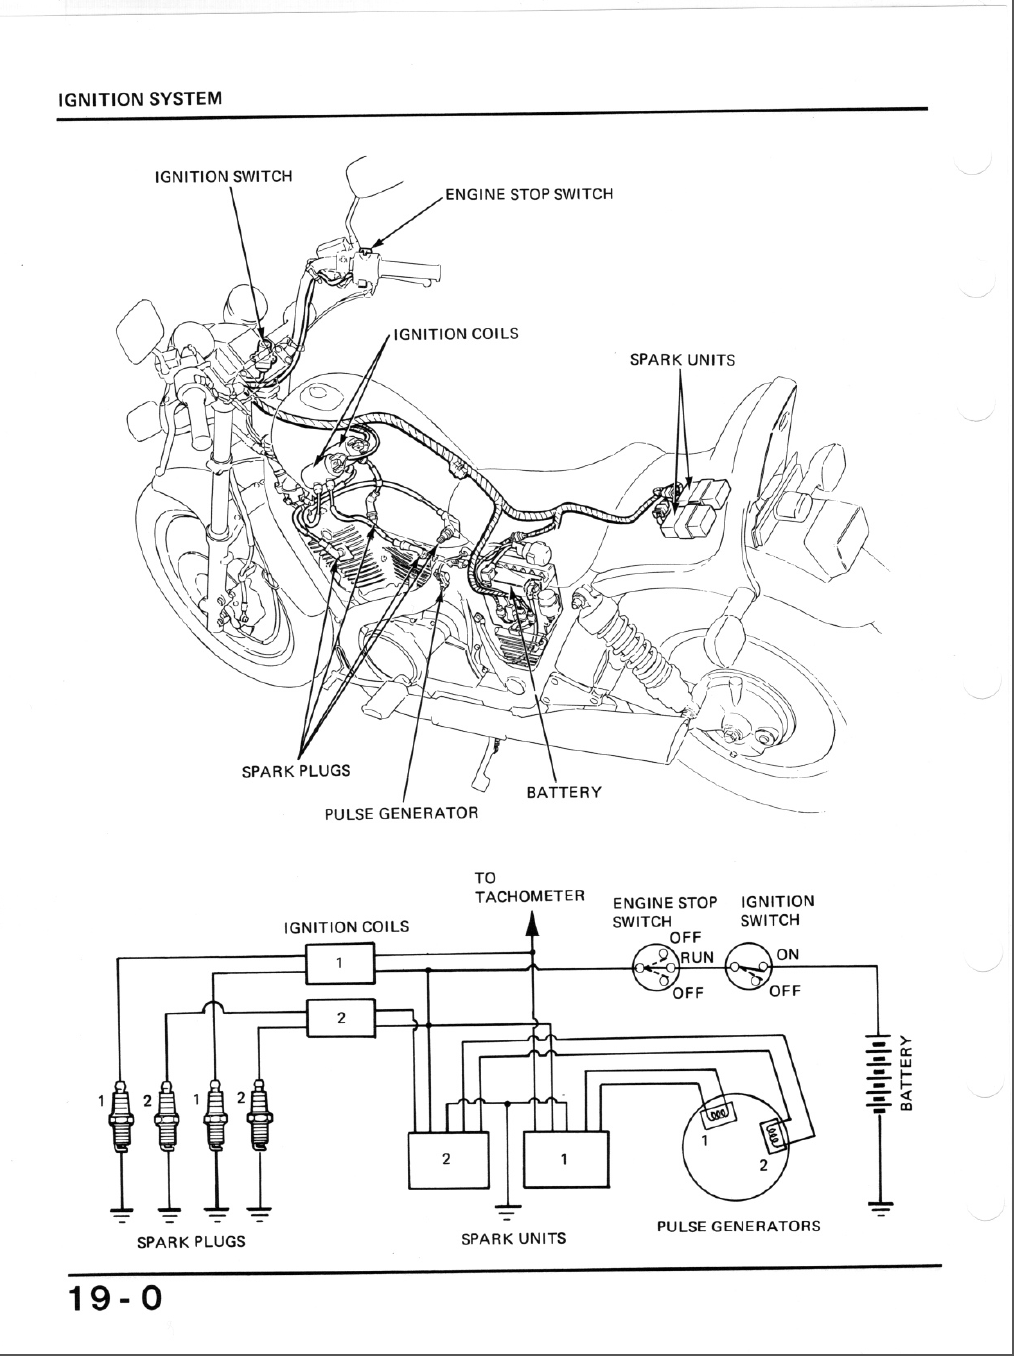 D Honda Shadow Ignition System on 1983 Honda Shadow 750 Wiring Diagram